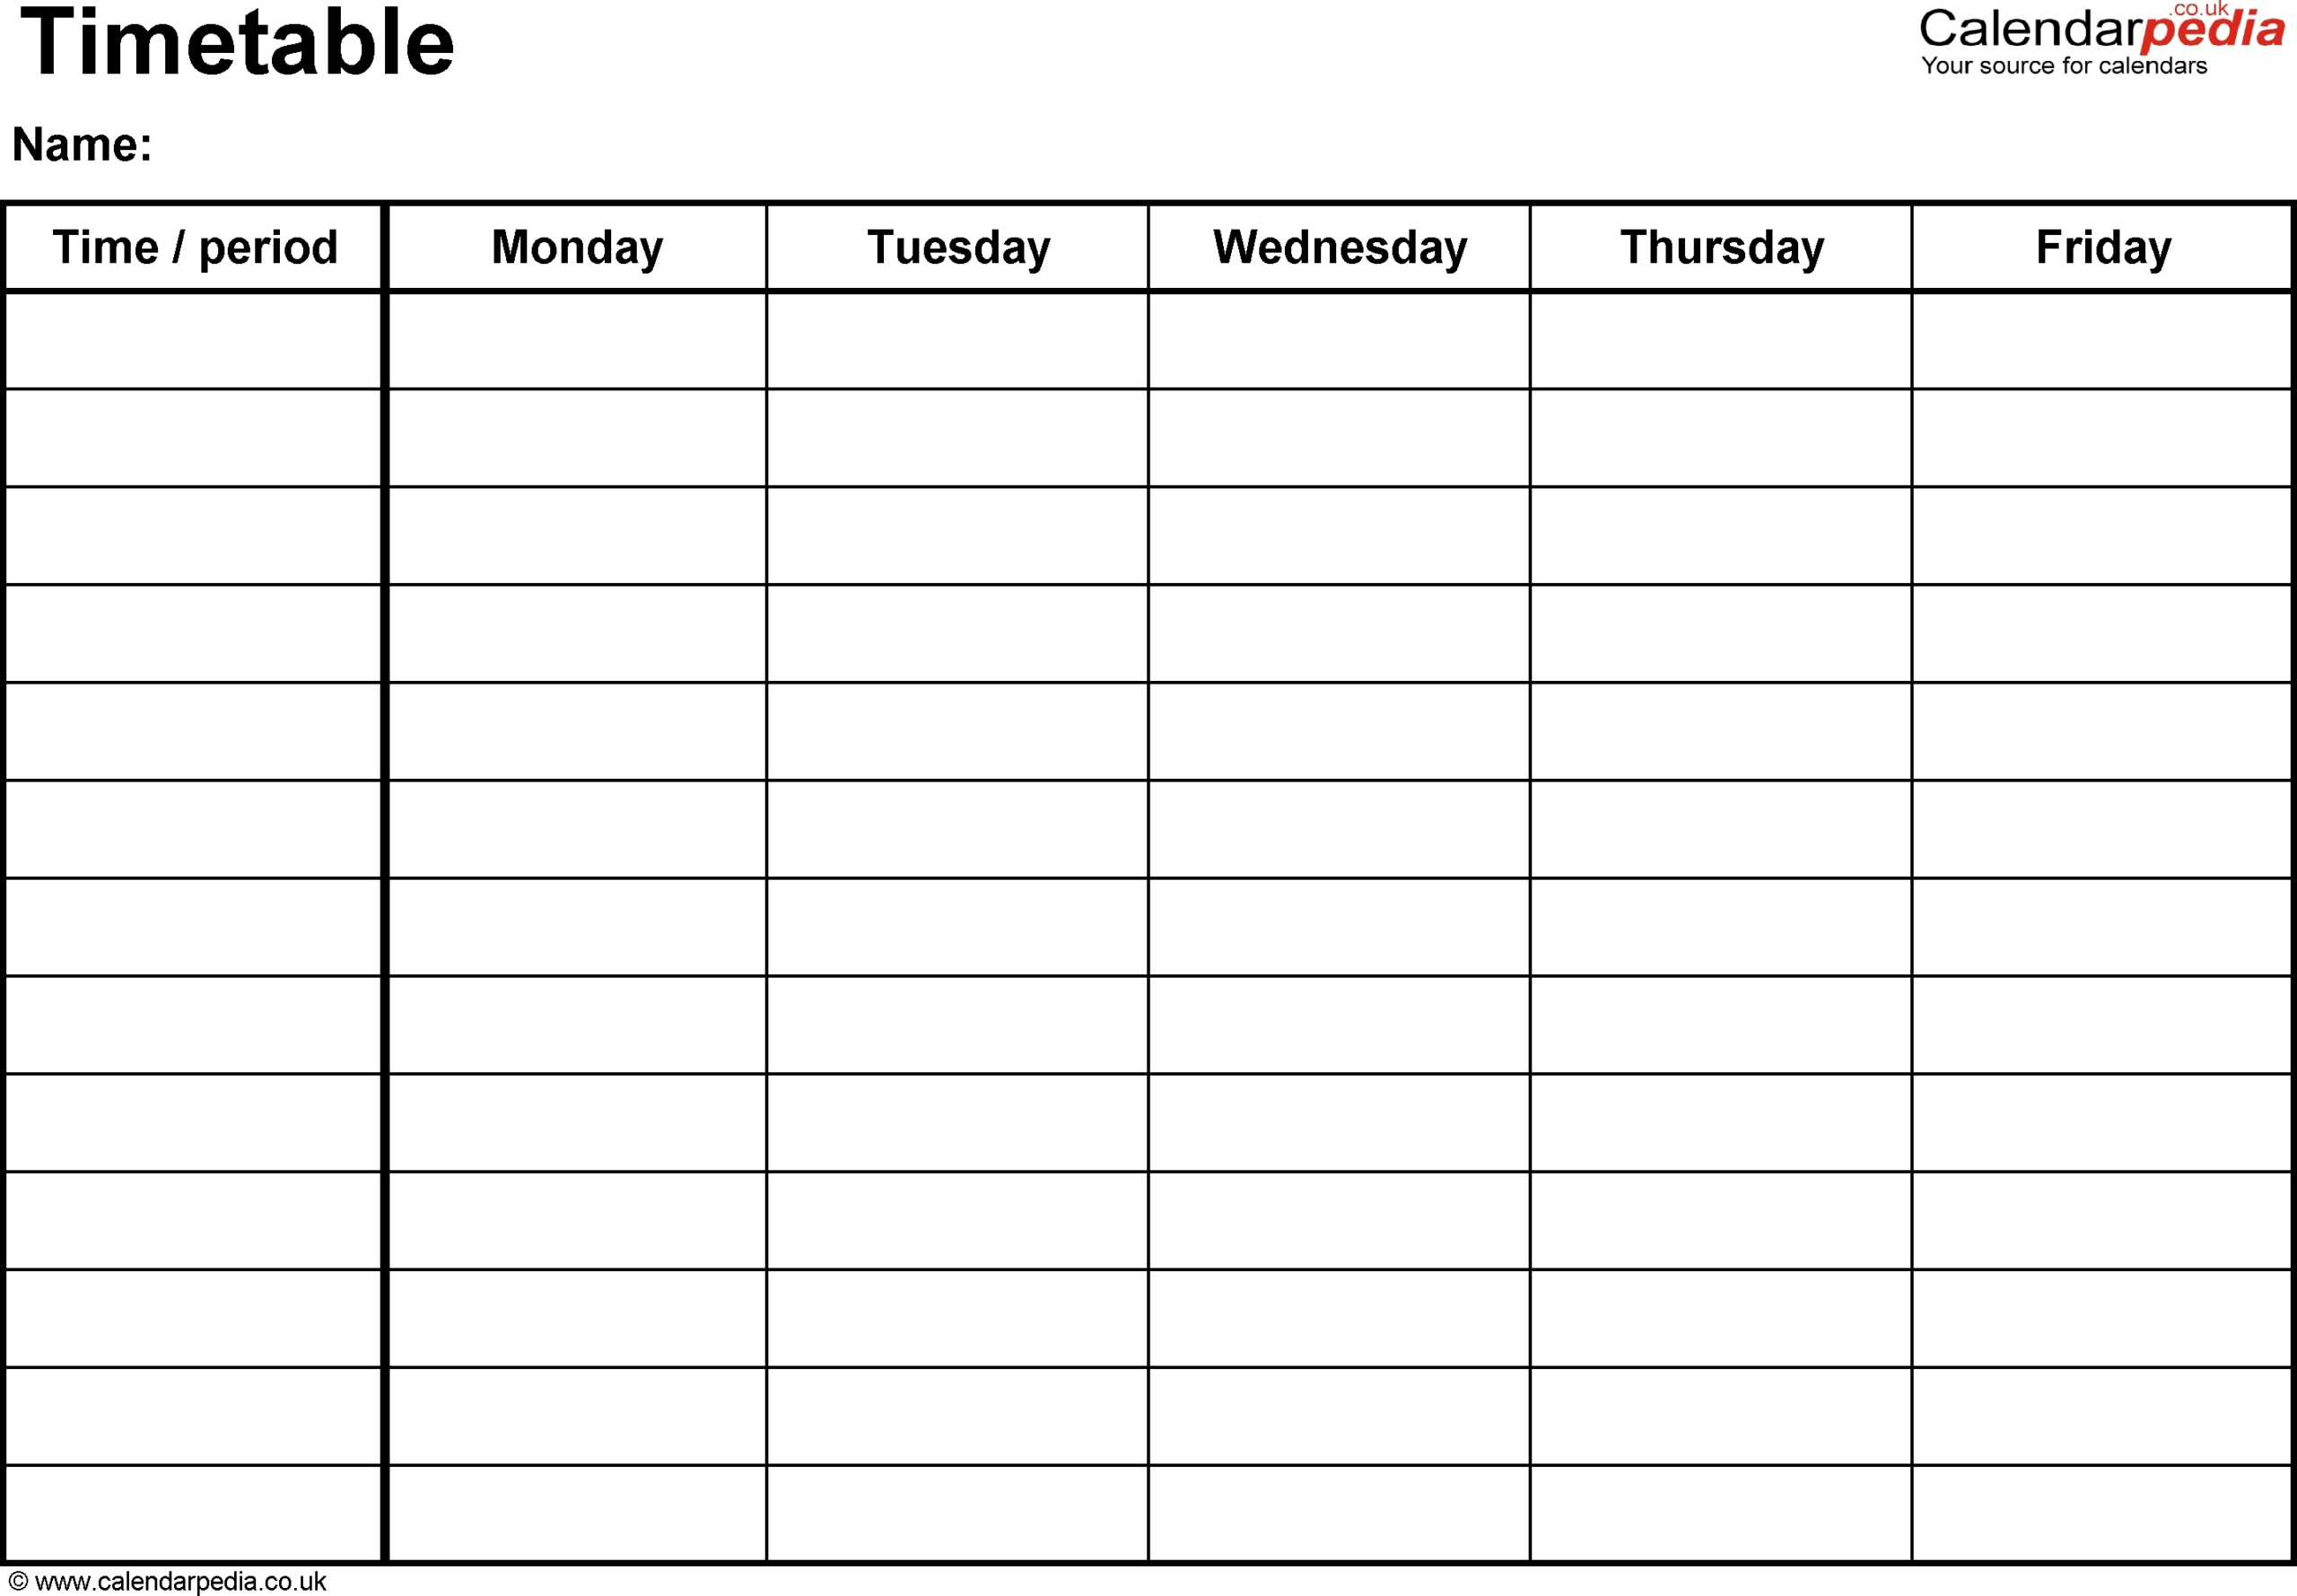 Monday Though Friday Timed Schedule - Calendar Inspiration Design